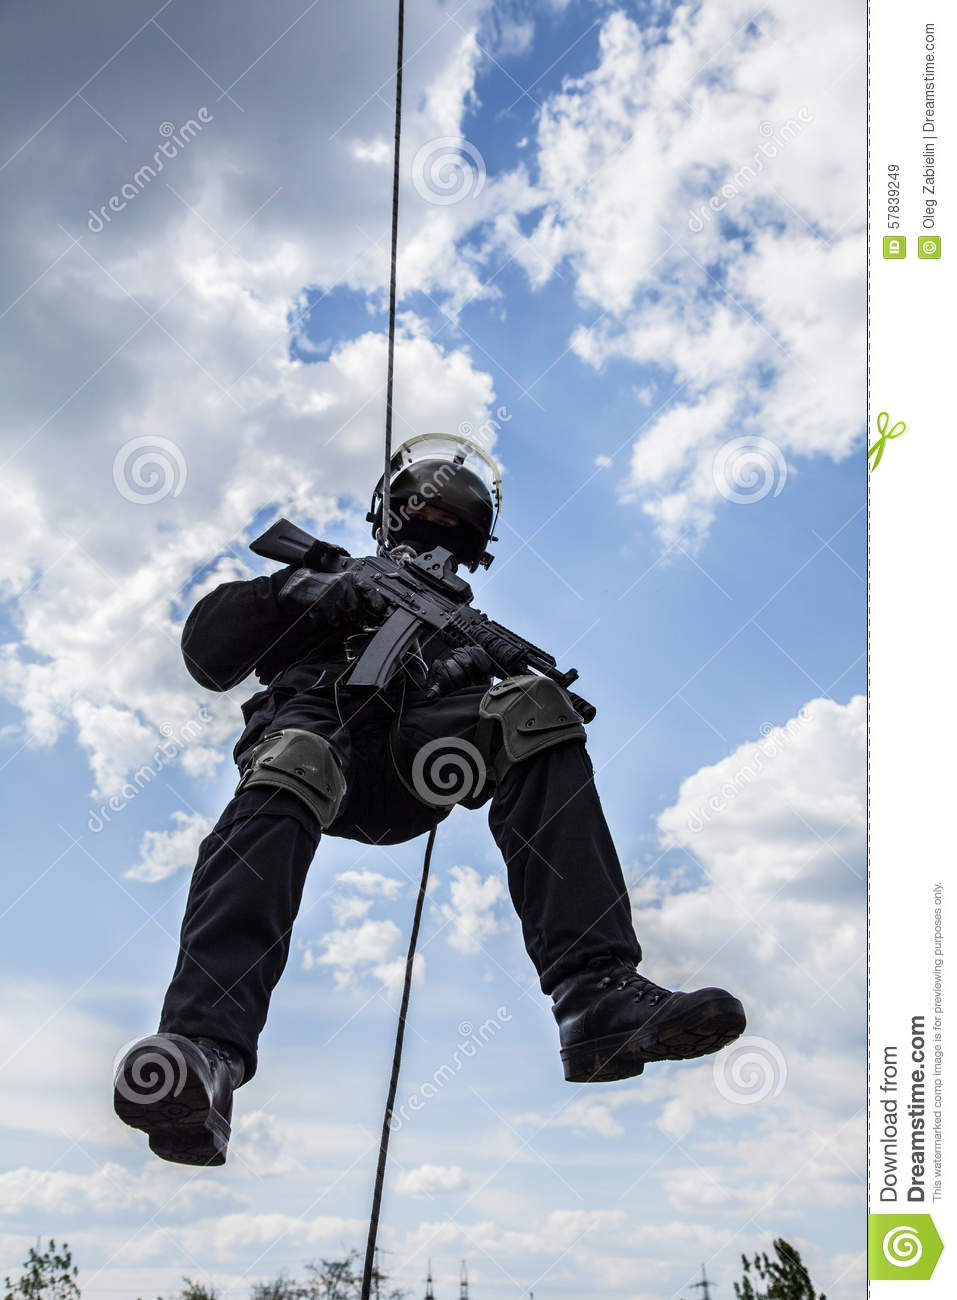 Rappeling anfall